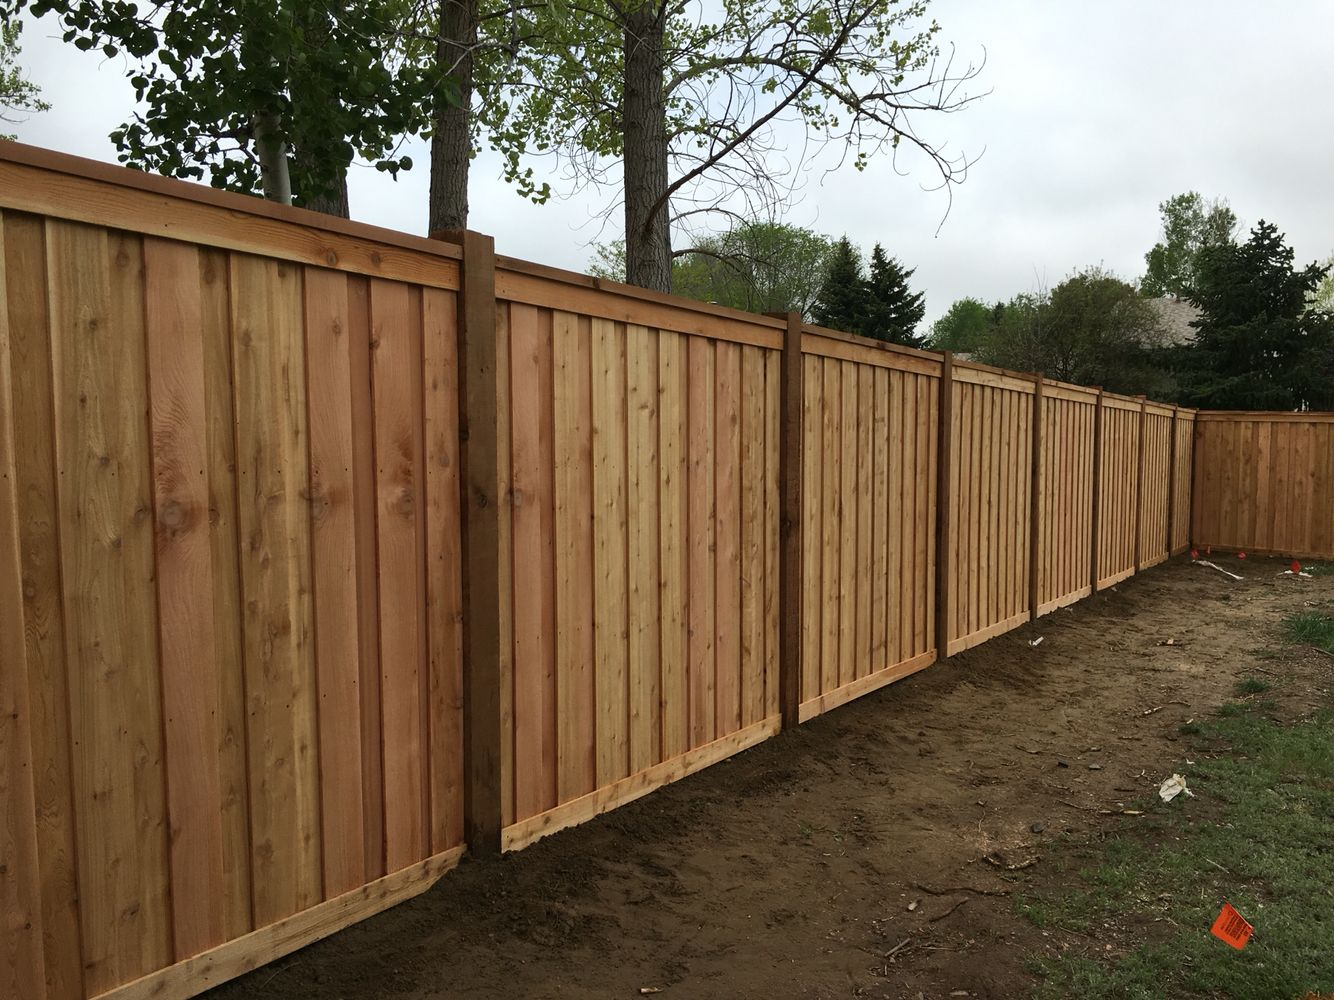 Best Cedar Fence Ideas On Pinterest Backyard Fences Fence - 5 backyard fence types